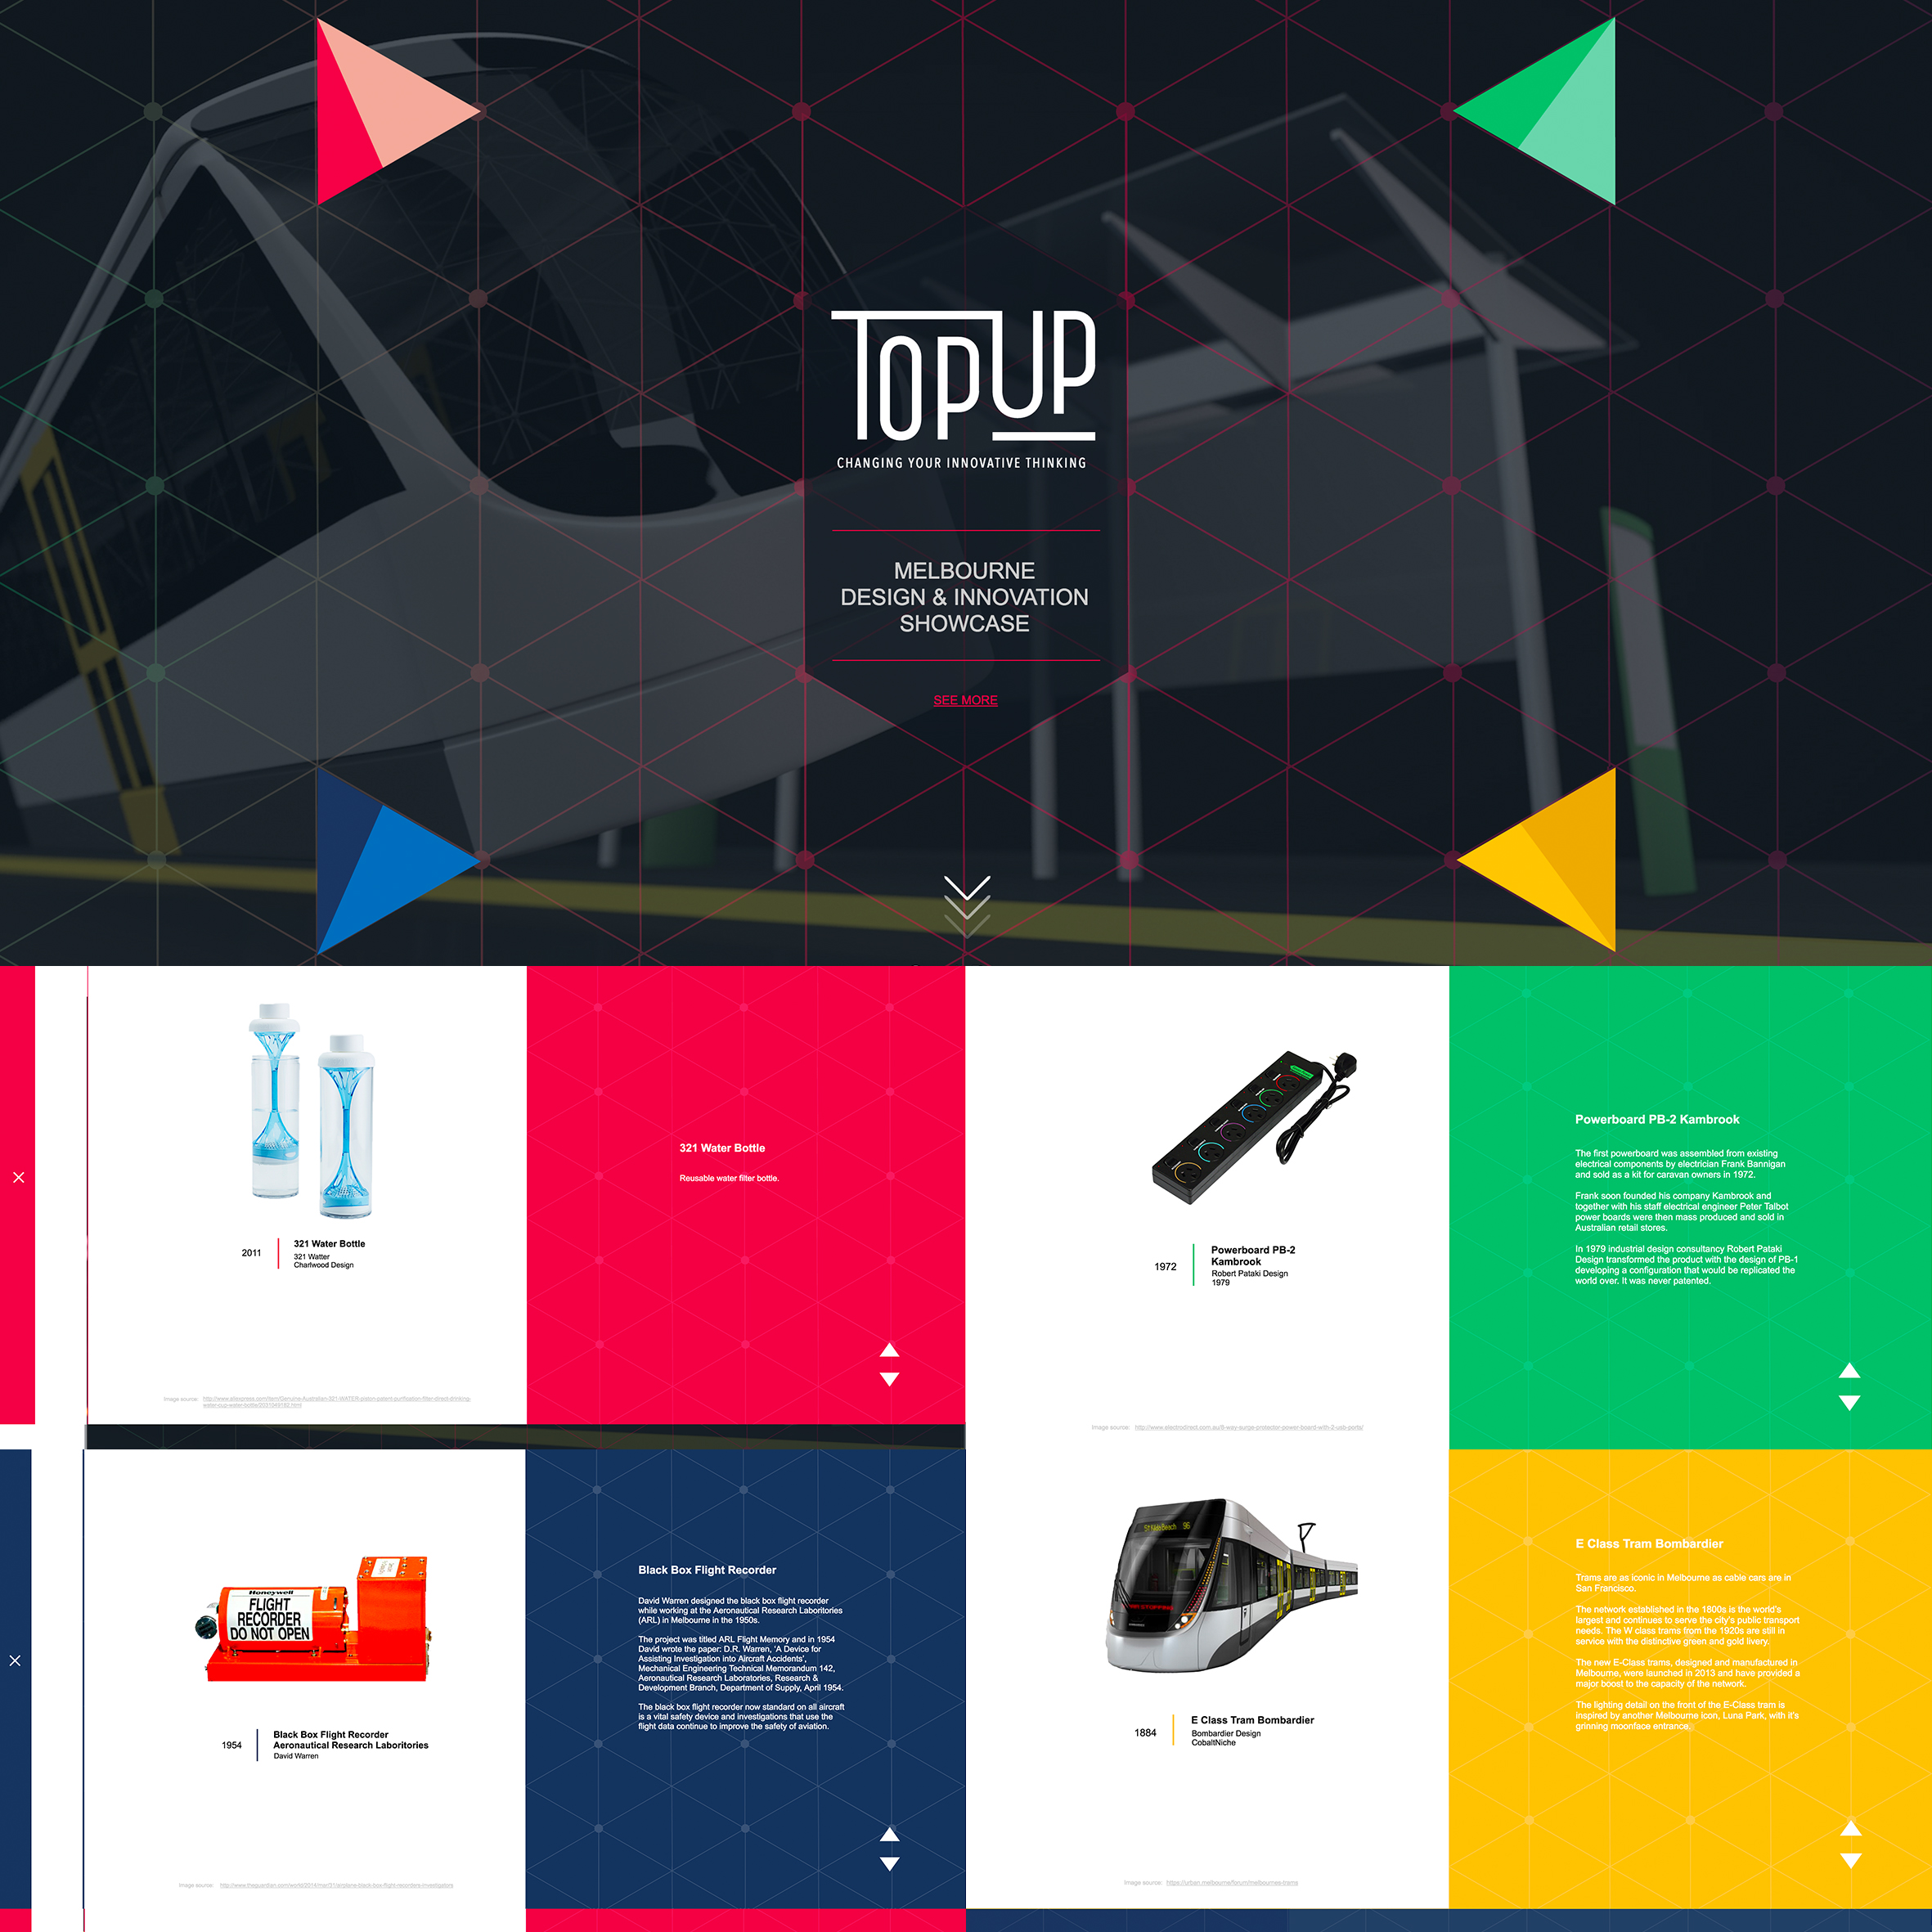 Chang Han, TopUP 2015 - Master of Multimedia Design